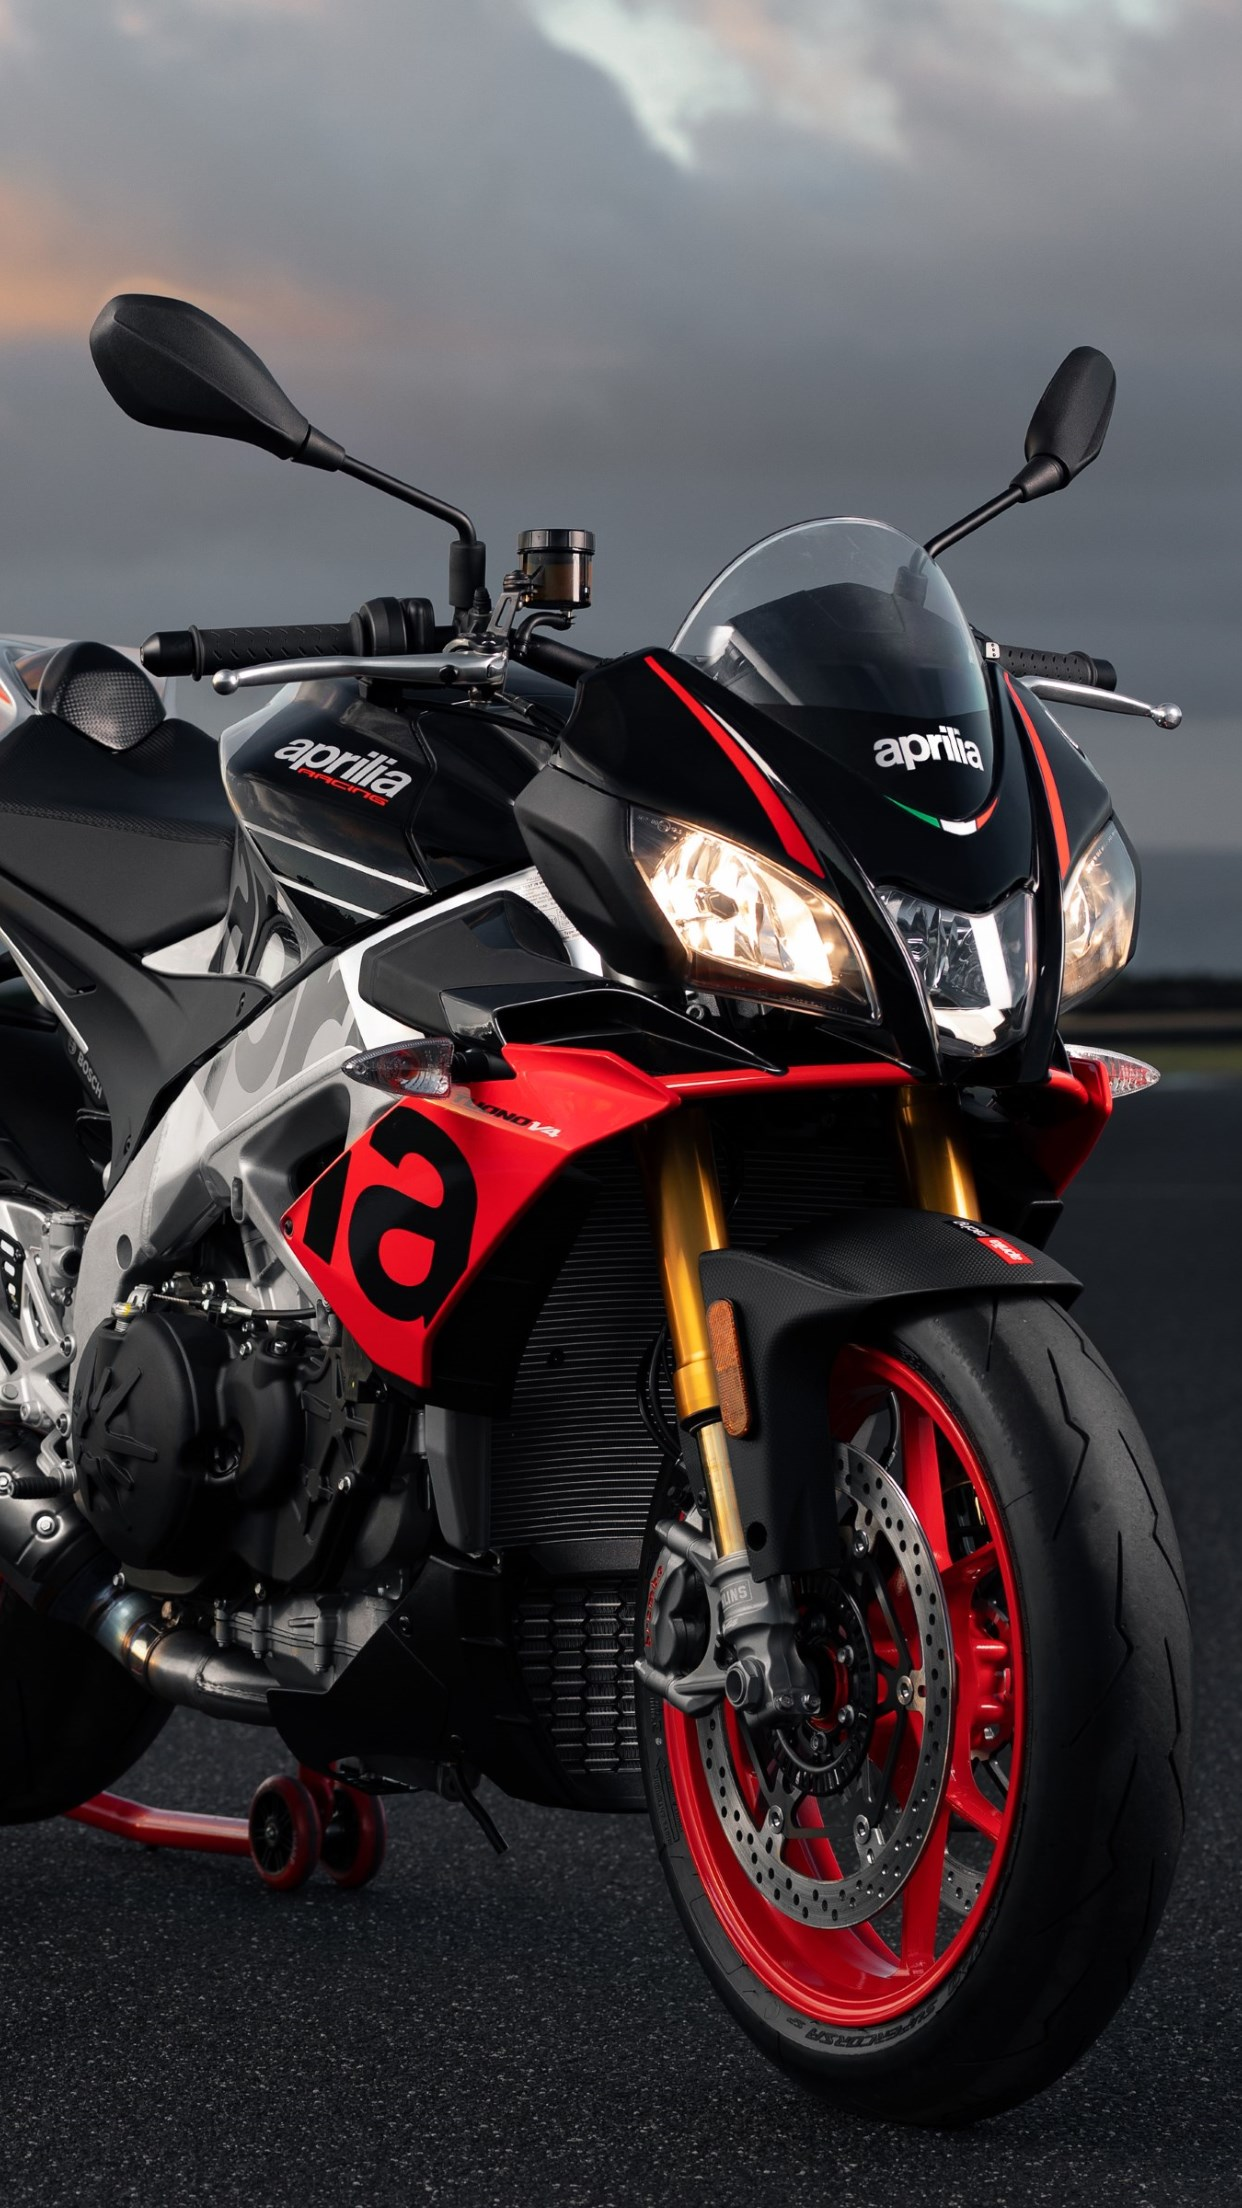 Aprilia Tuono V4 1100 Factory wallpaper 1242x2208